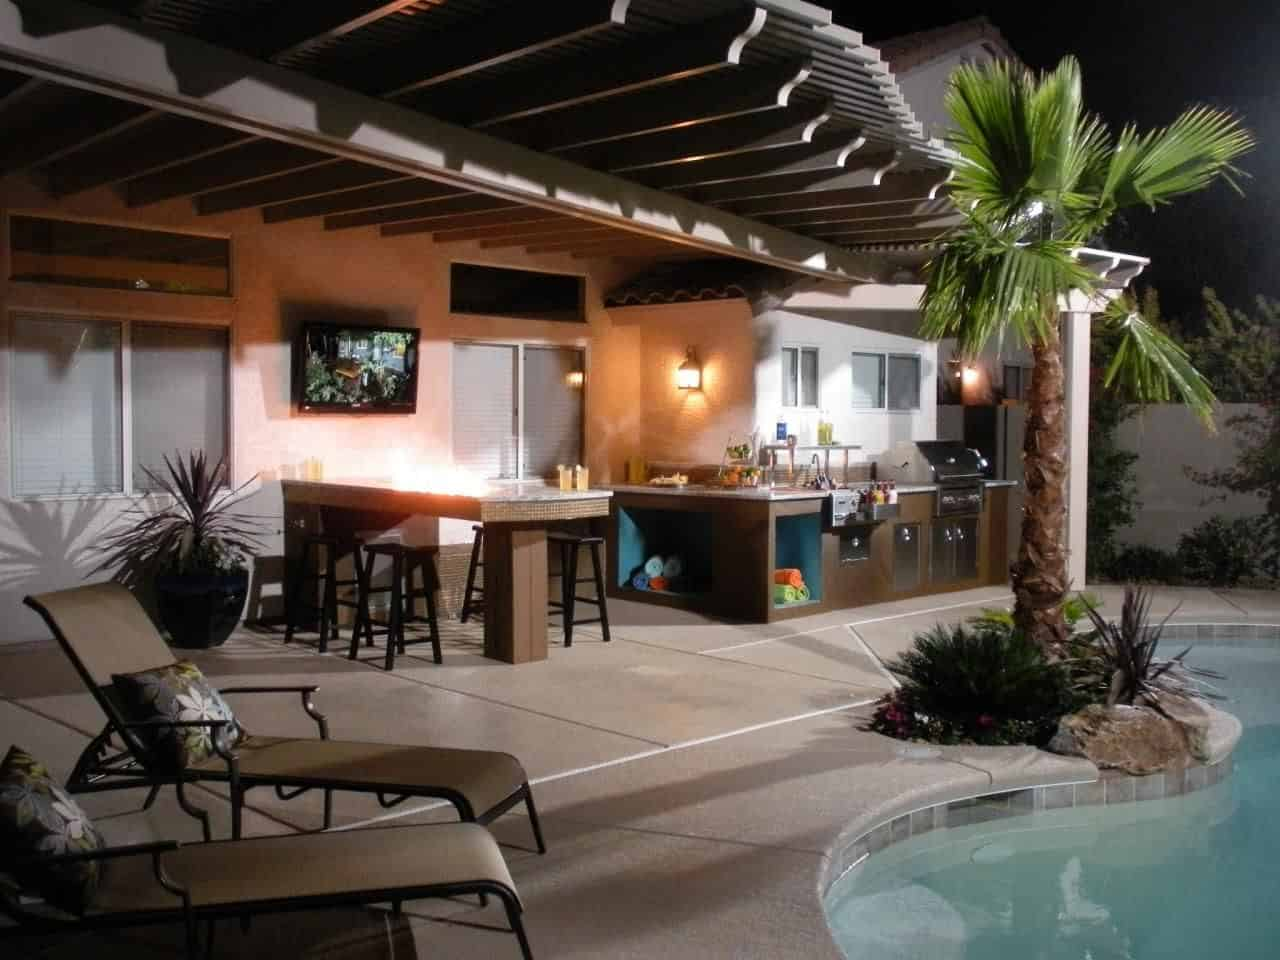 modern-outdoor-kitchen-ideas-grey-stone-bricking-walls-orange-pendant-bar-lighting-brown-varnished-wood-kitchen-island-brown-and-green-arm-chair-round-nickel-modern-swivel-bar-stool